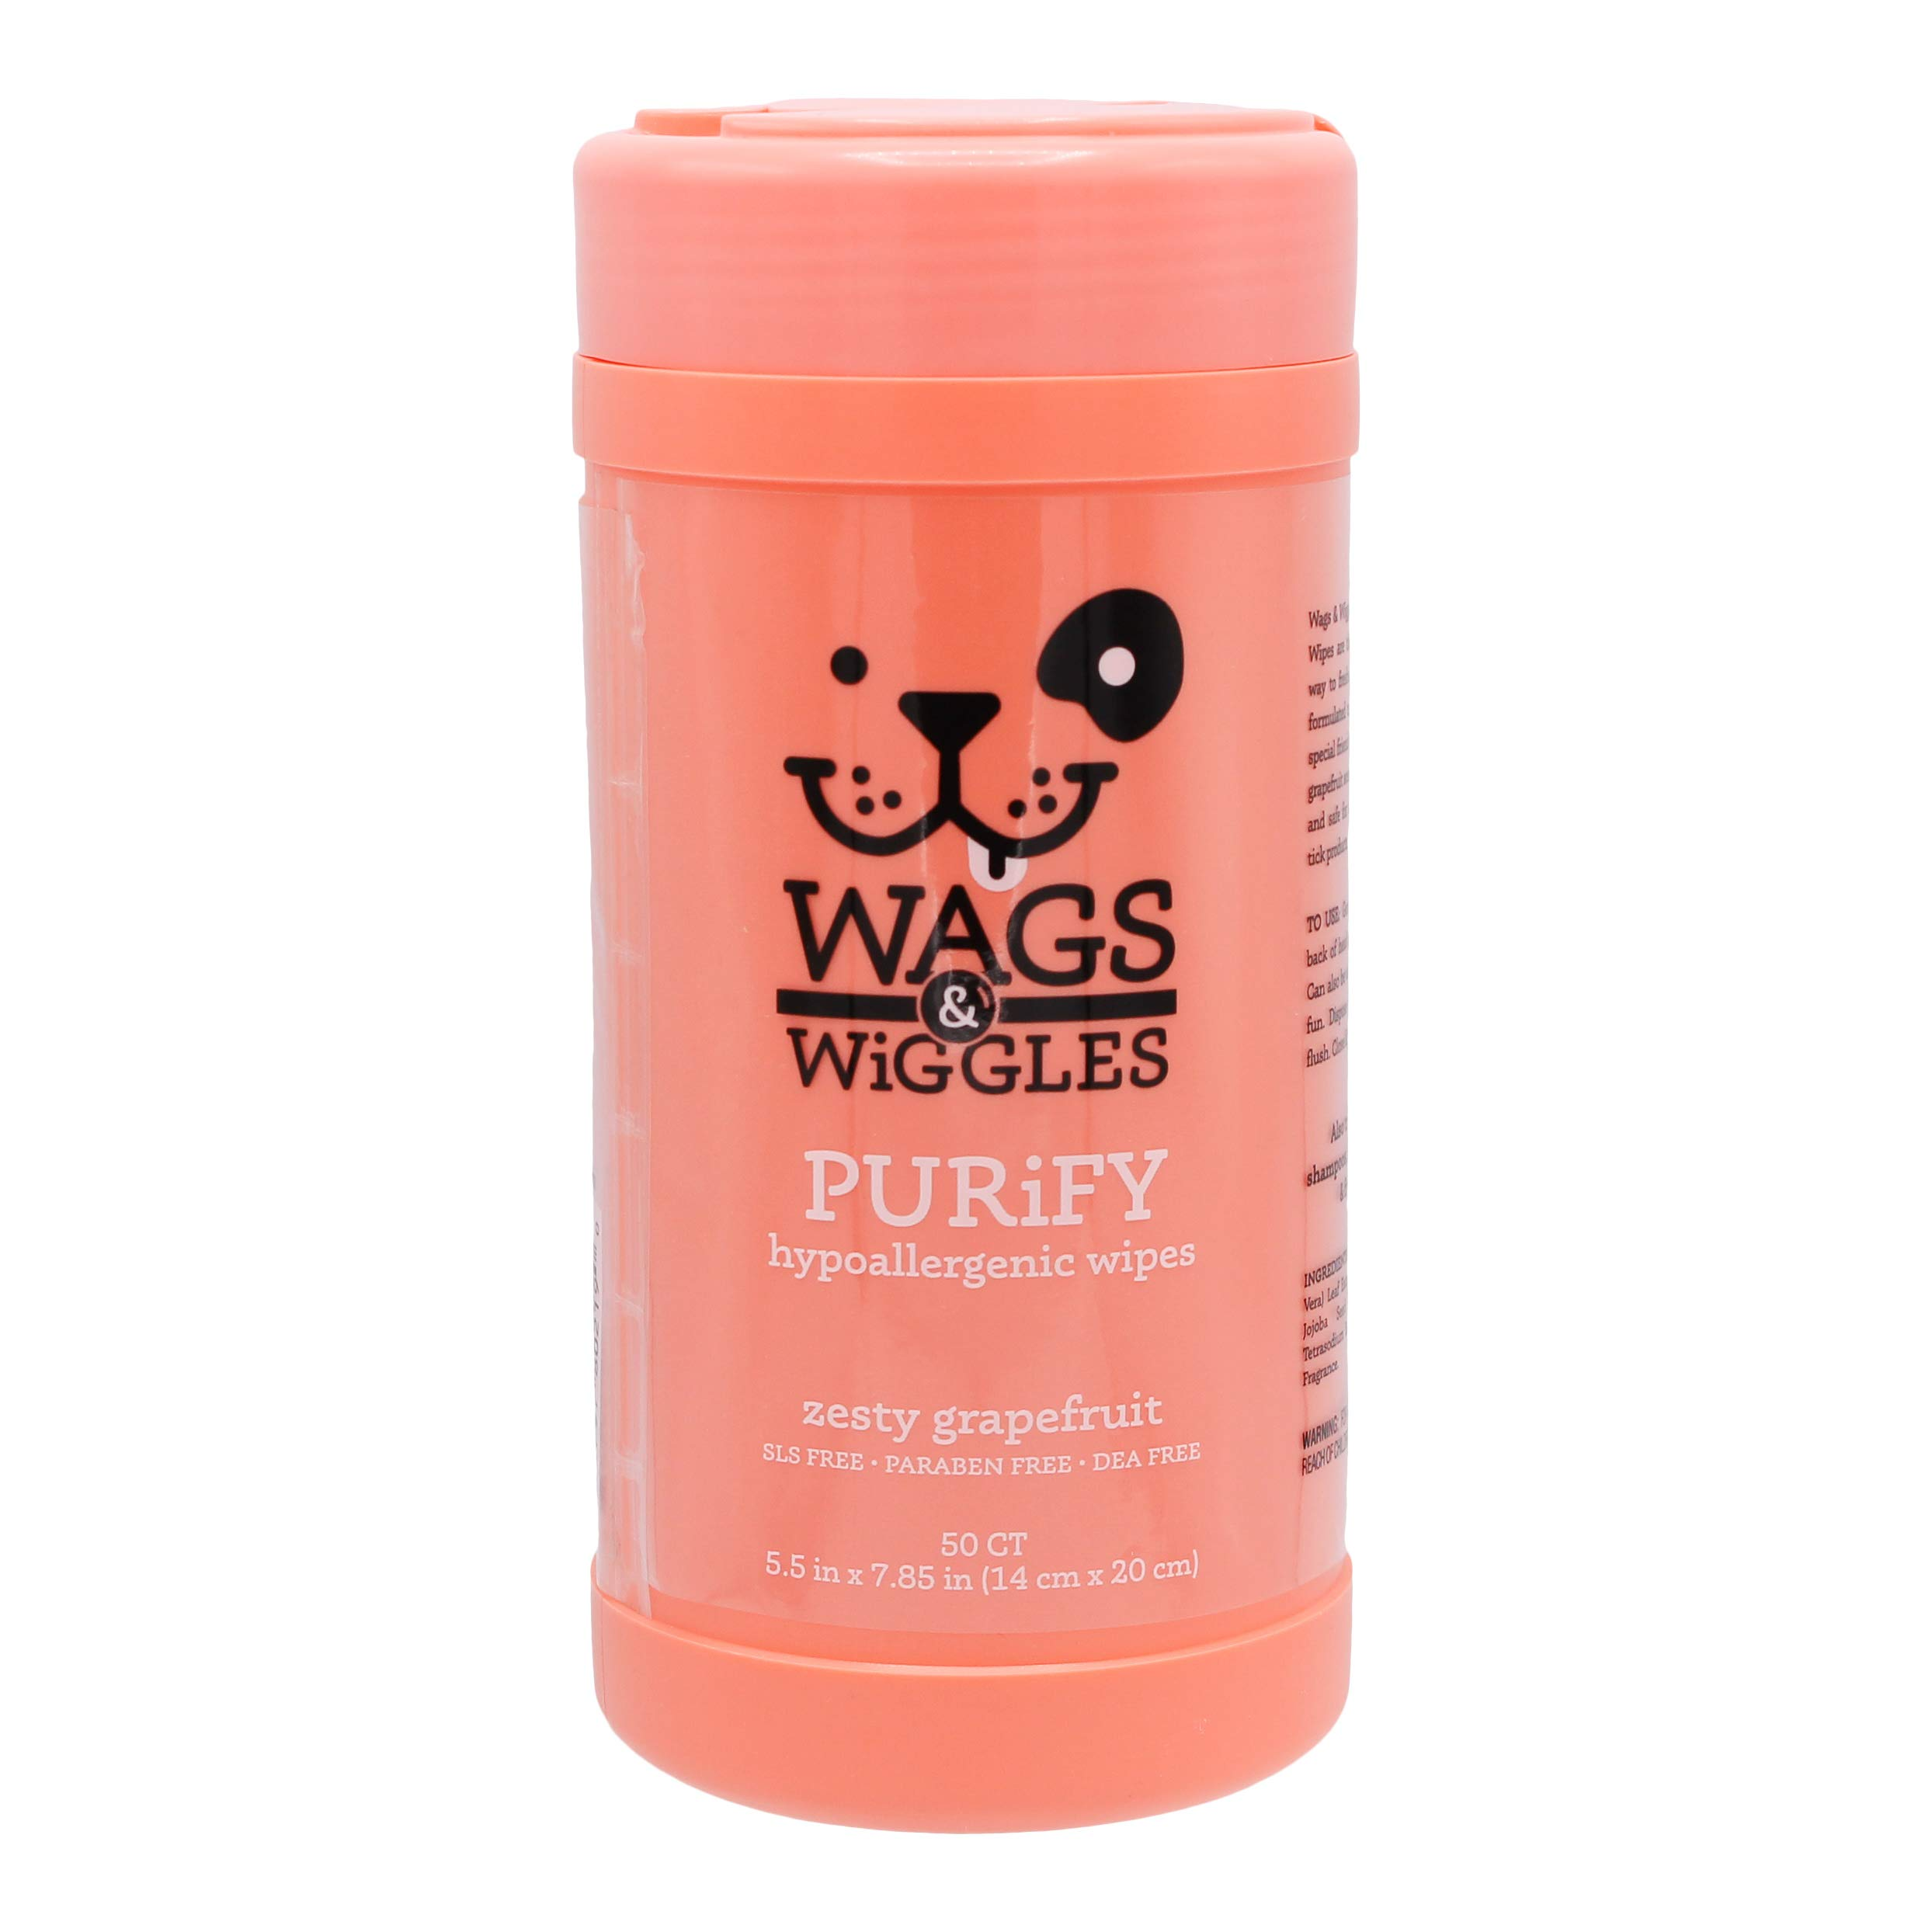 """Wags & Wiggles Purify Hypoallergenic Wipes for Dogs 